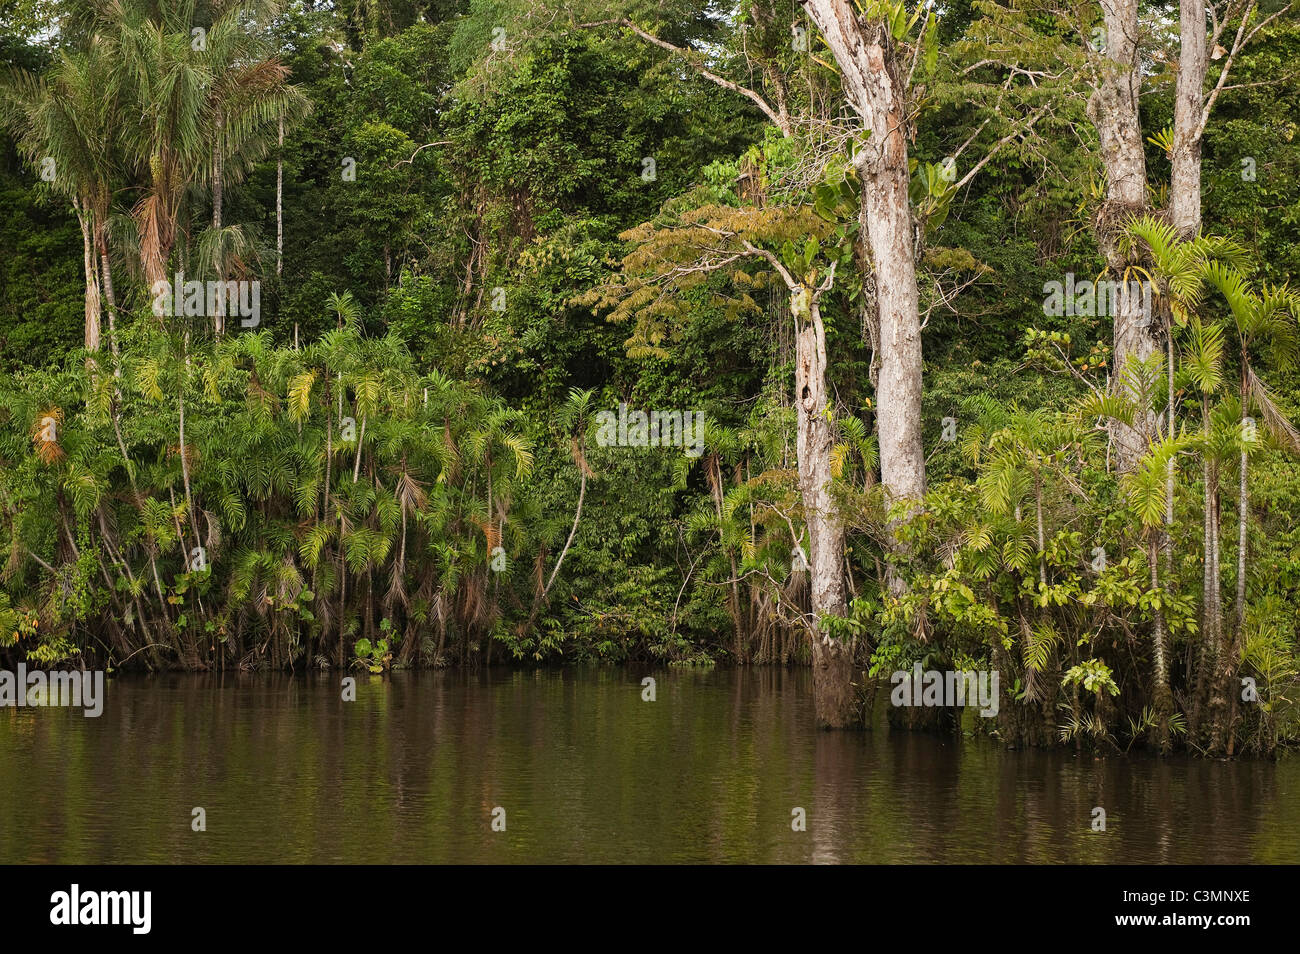 Flooded Igapo forest. Cocaya River. Eastern Amazon Rain Forest. Border of Peru and Ecuador, South America. - Stock Image